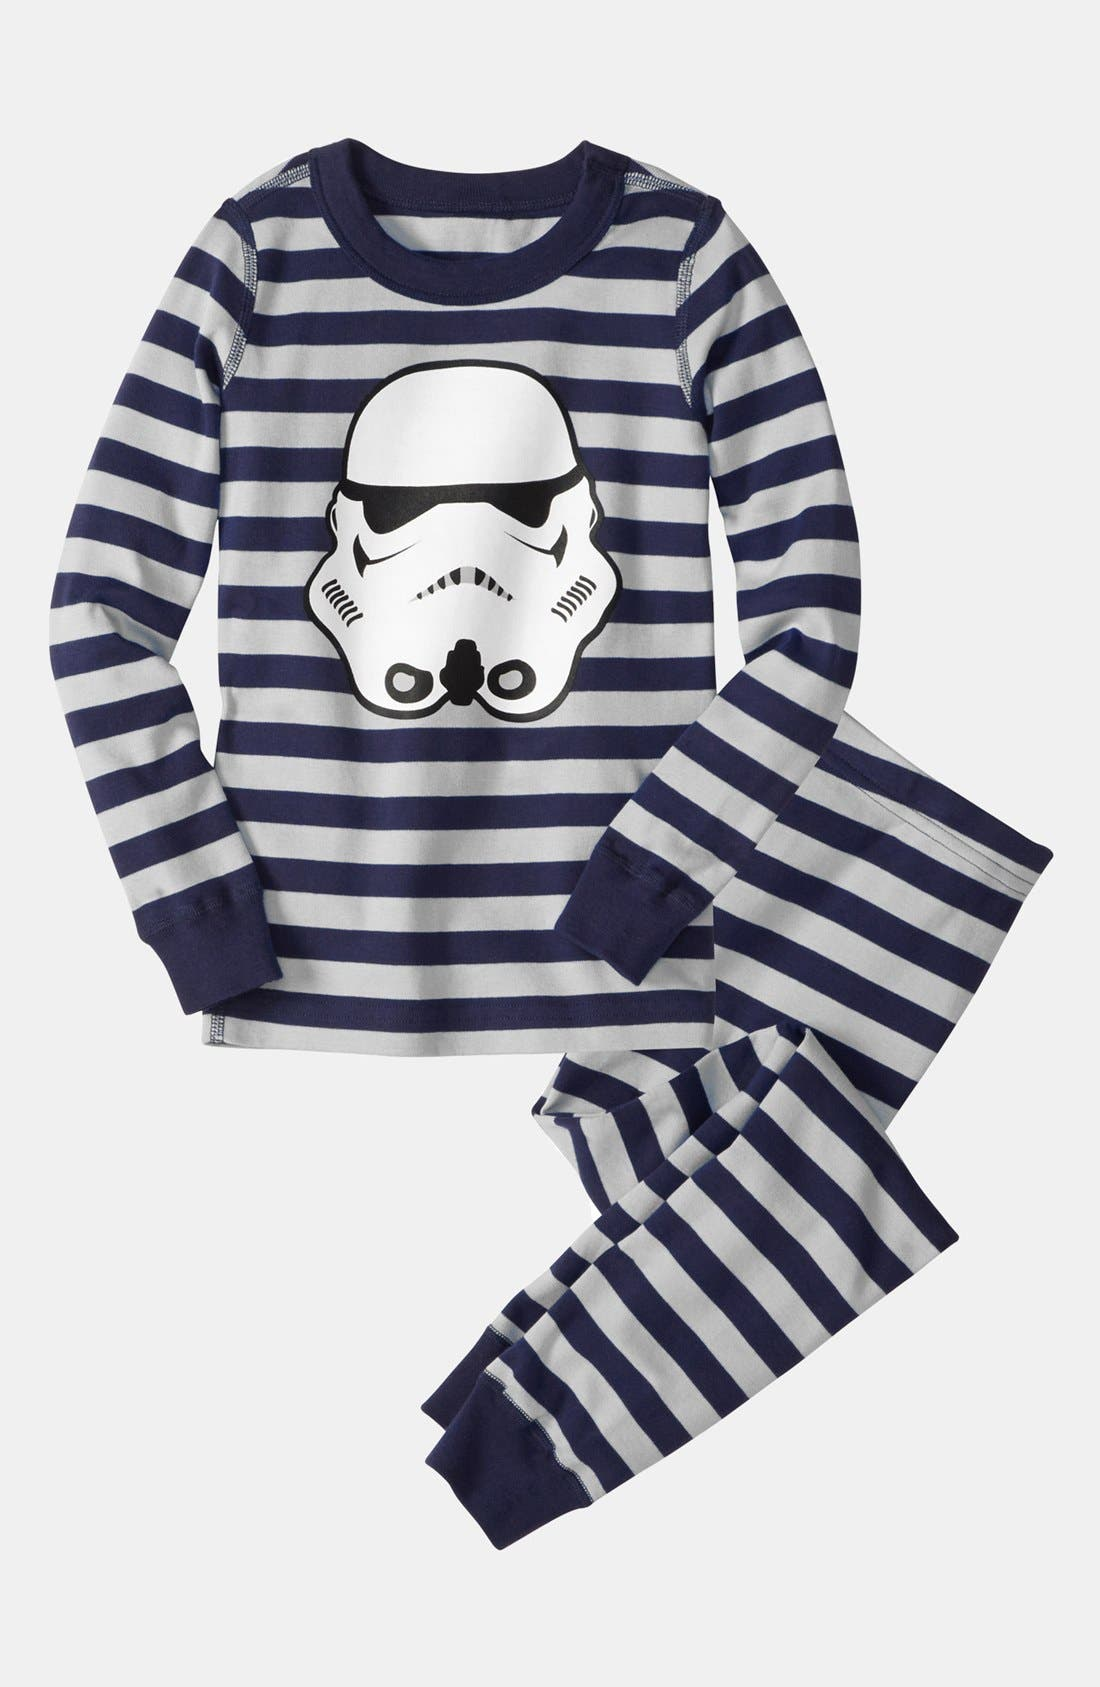 Alternate Image 1 Selected - Hanna Andersson Two Piece Fitted Pajamas (Toddler Boys)